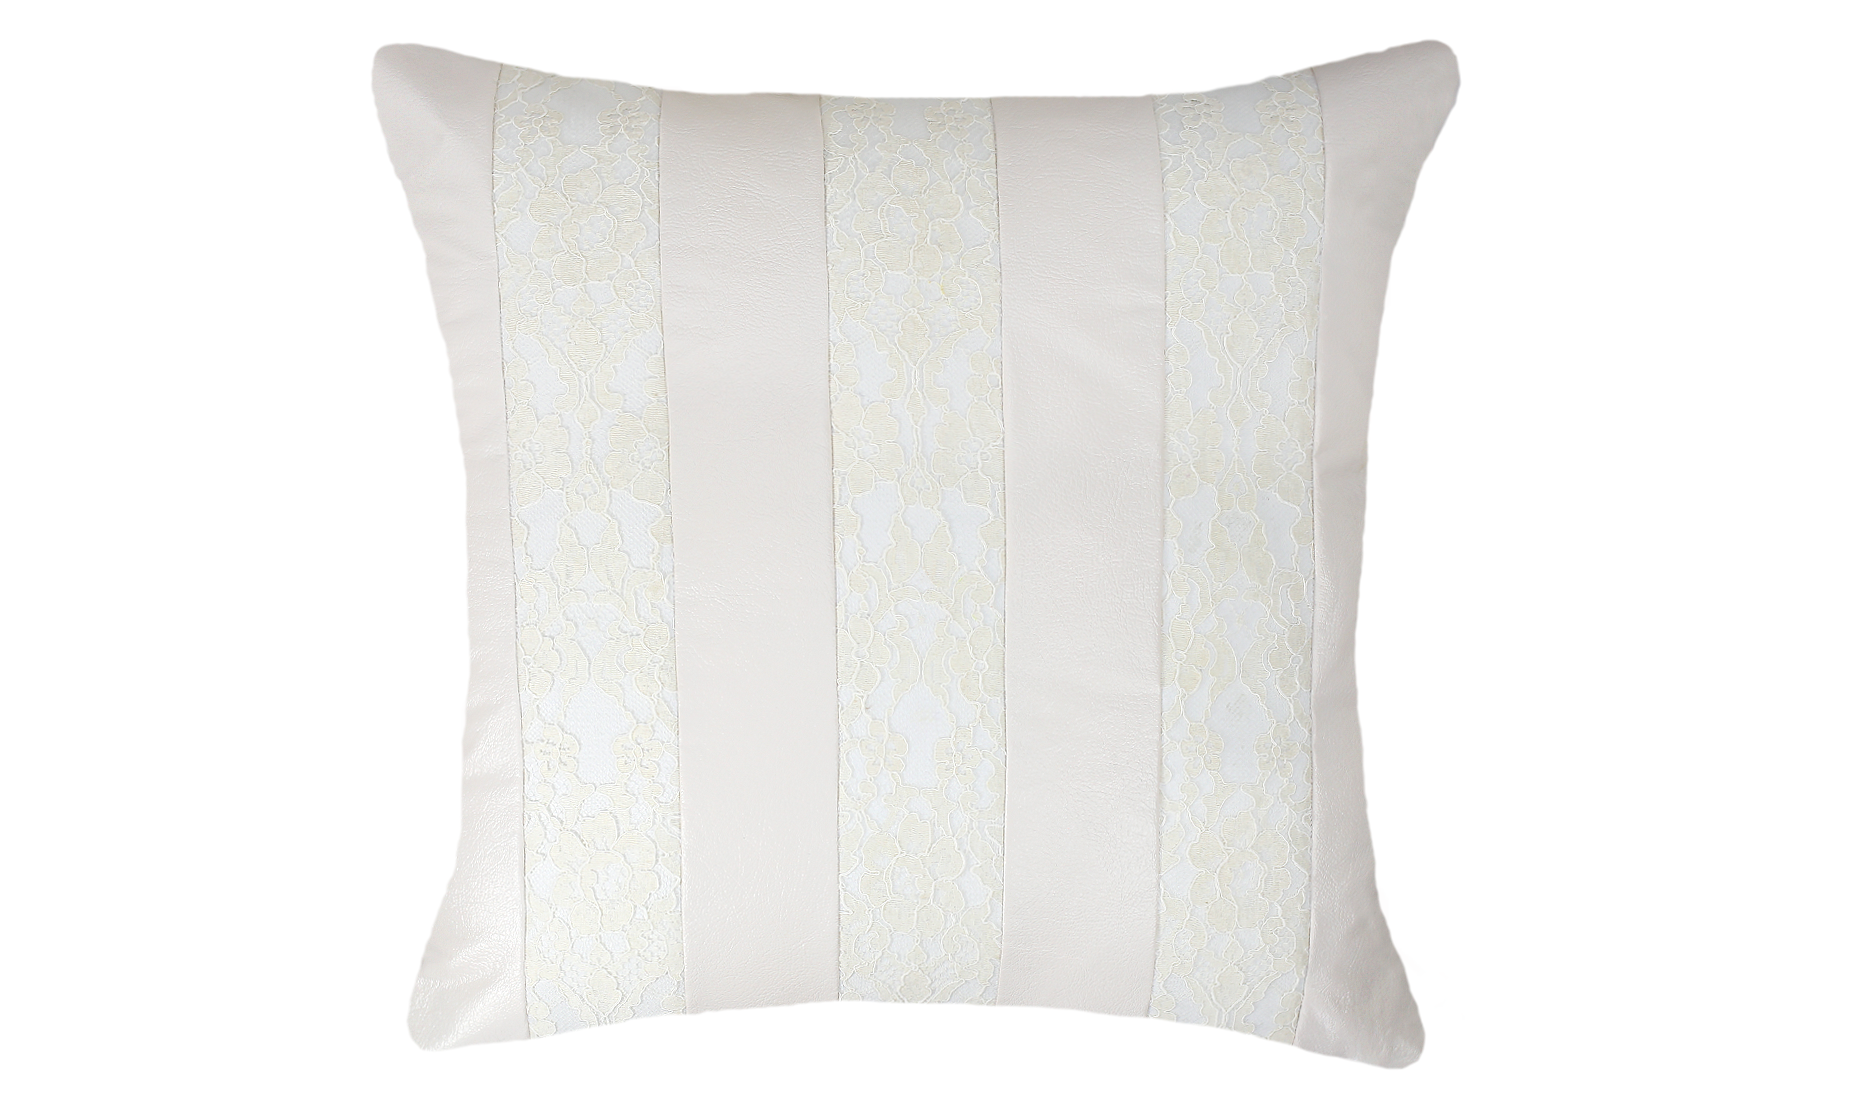 Snow White Lace Stripes Throw Pillow Cover